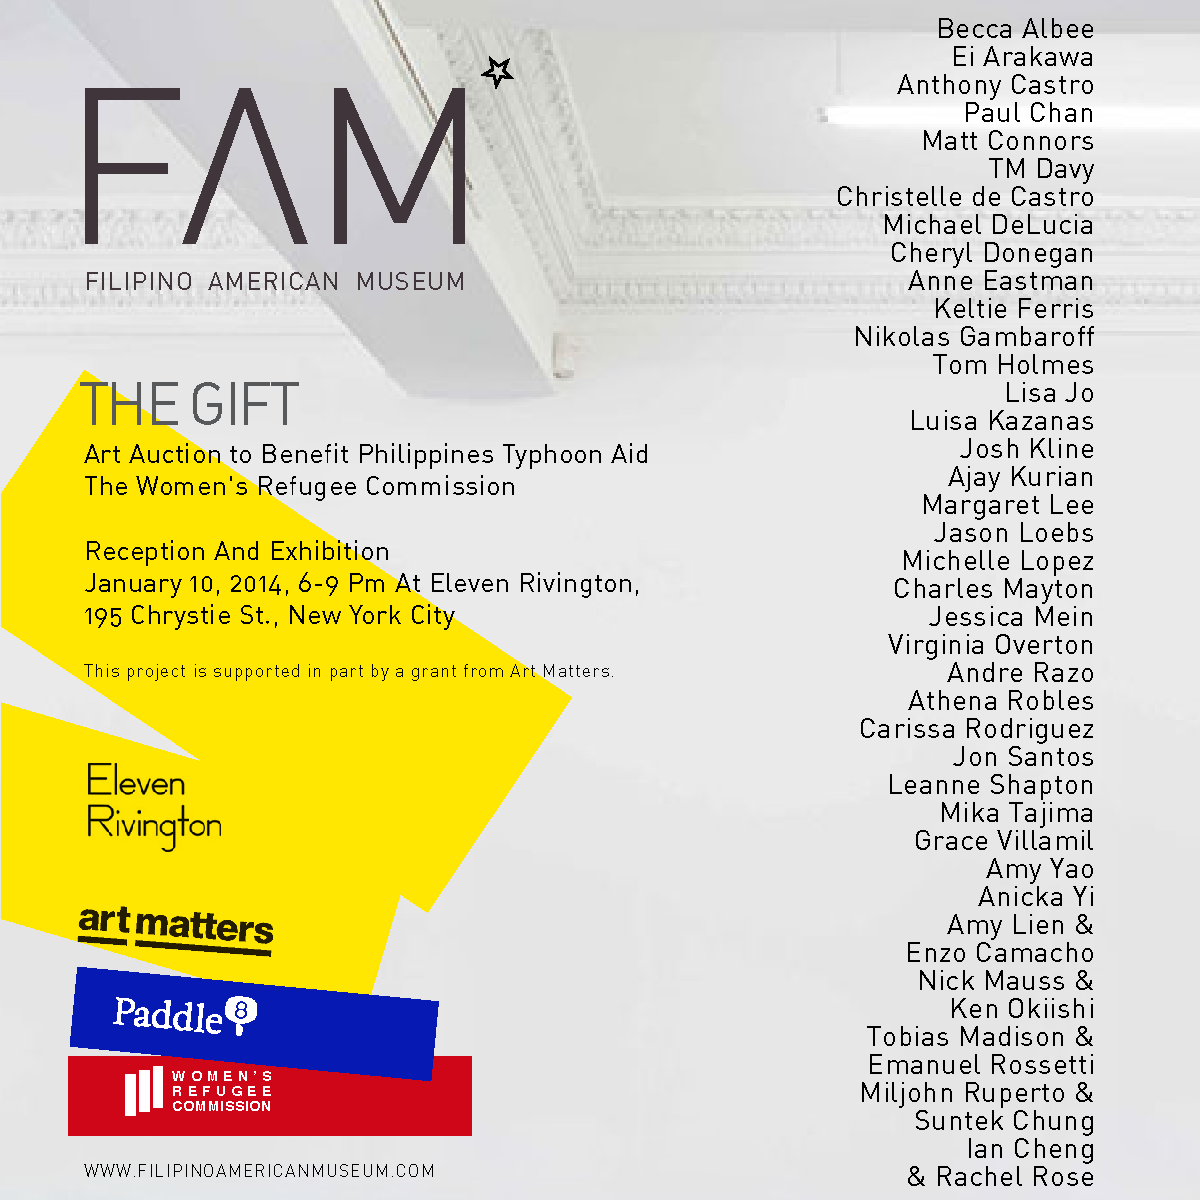 Come out to the group show supporting aid for Typhoon Haiyan!